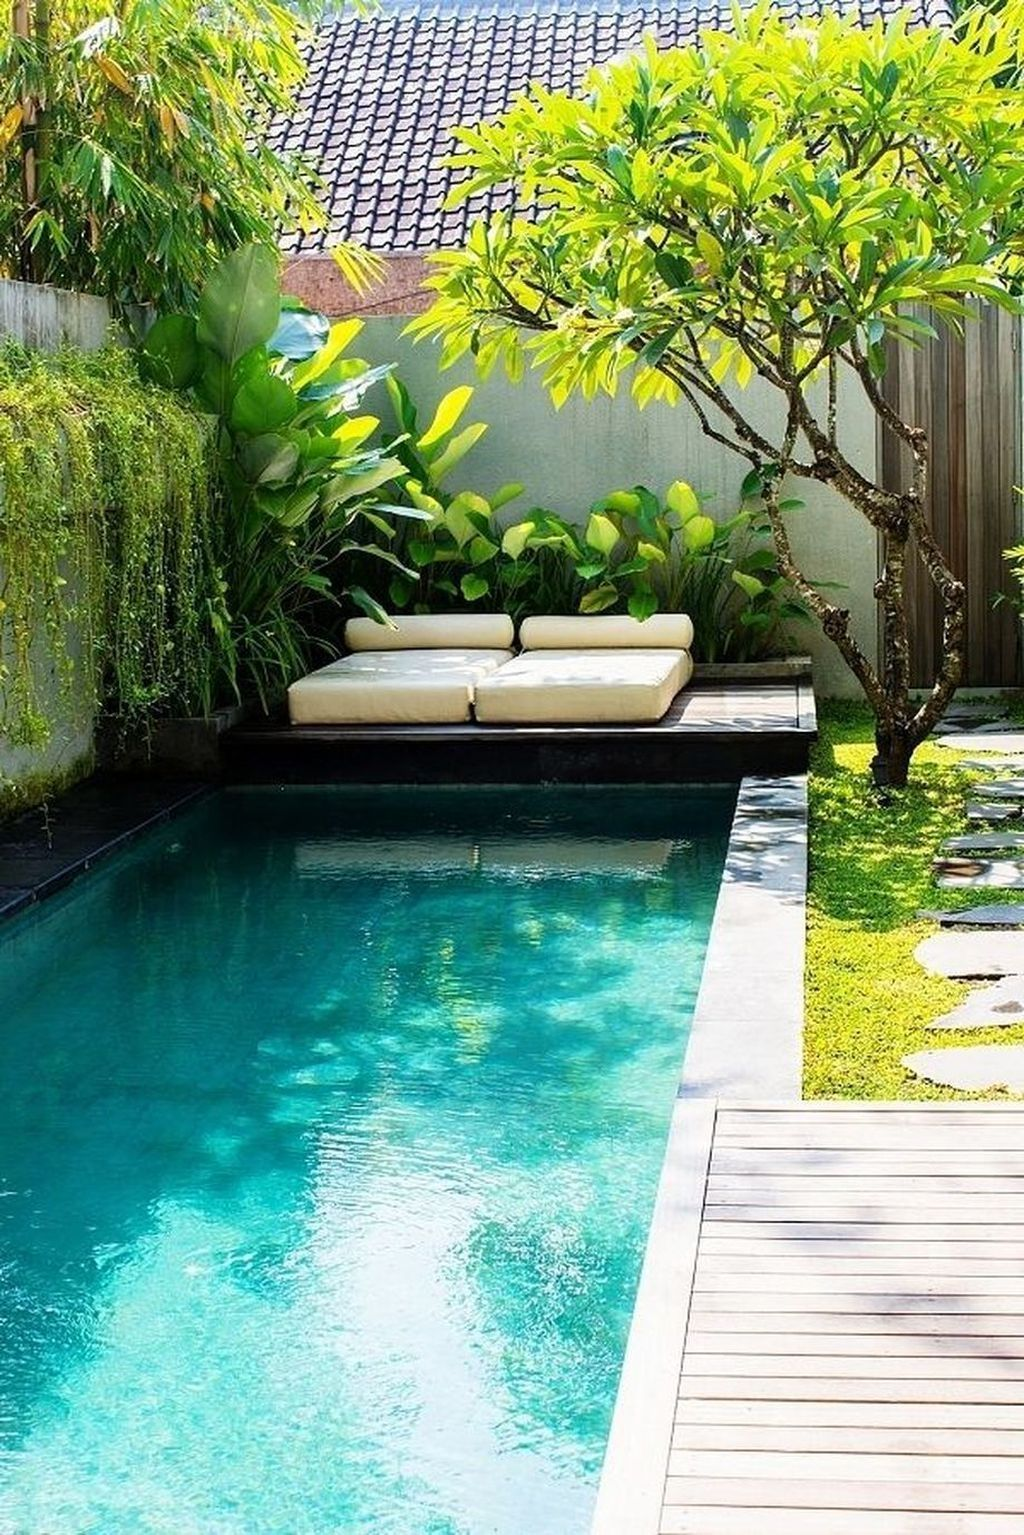 40 Inexpensive Pool Design Ideas For Your Home Swimming Pools Backyard Small Pool Design Small Backyard Pools